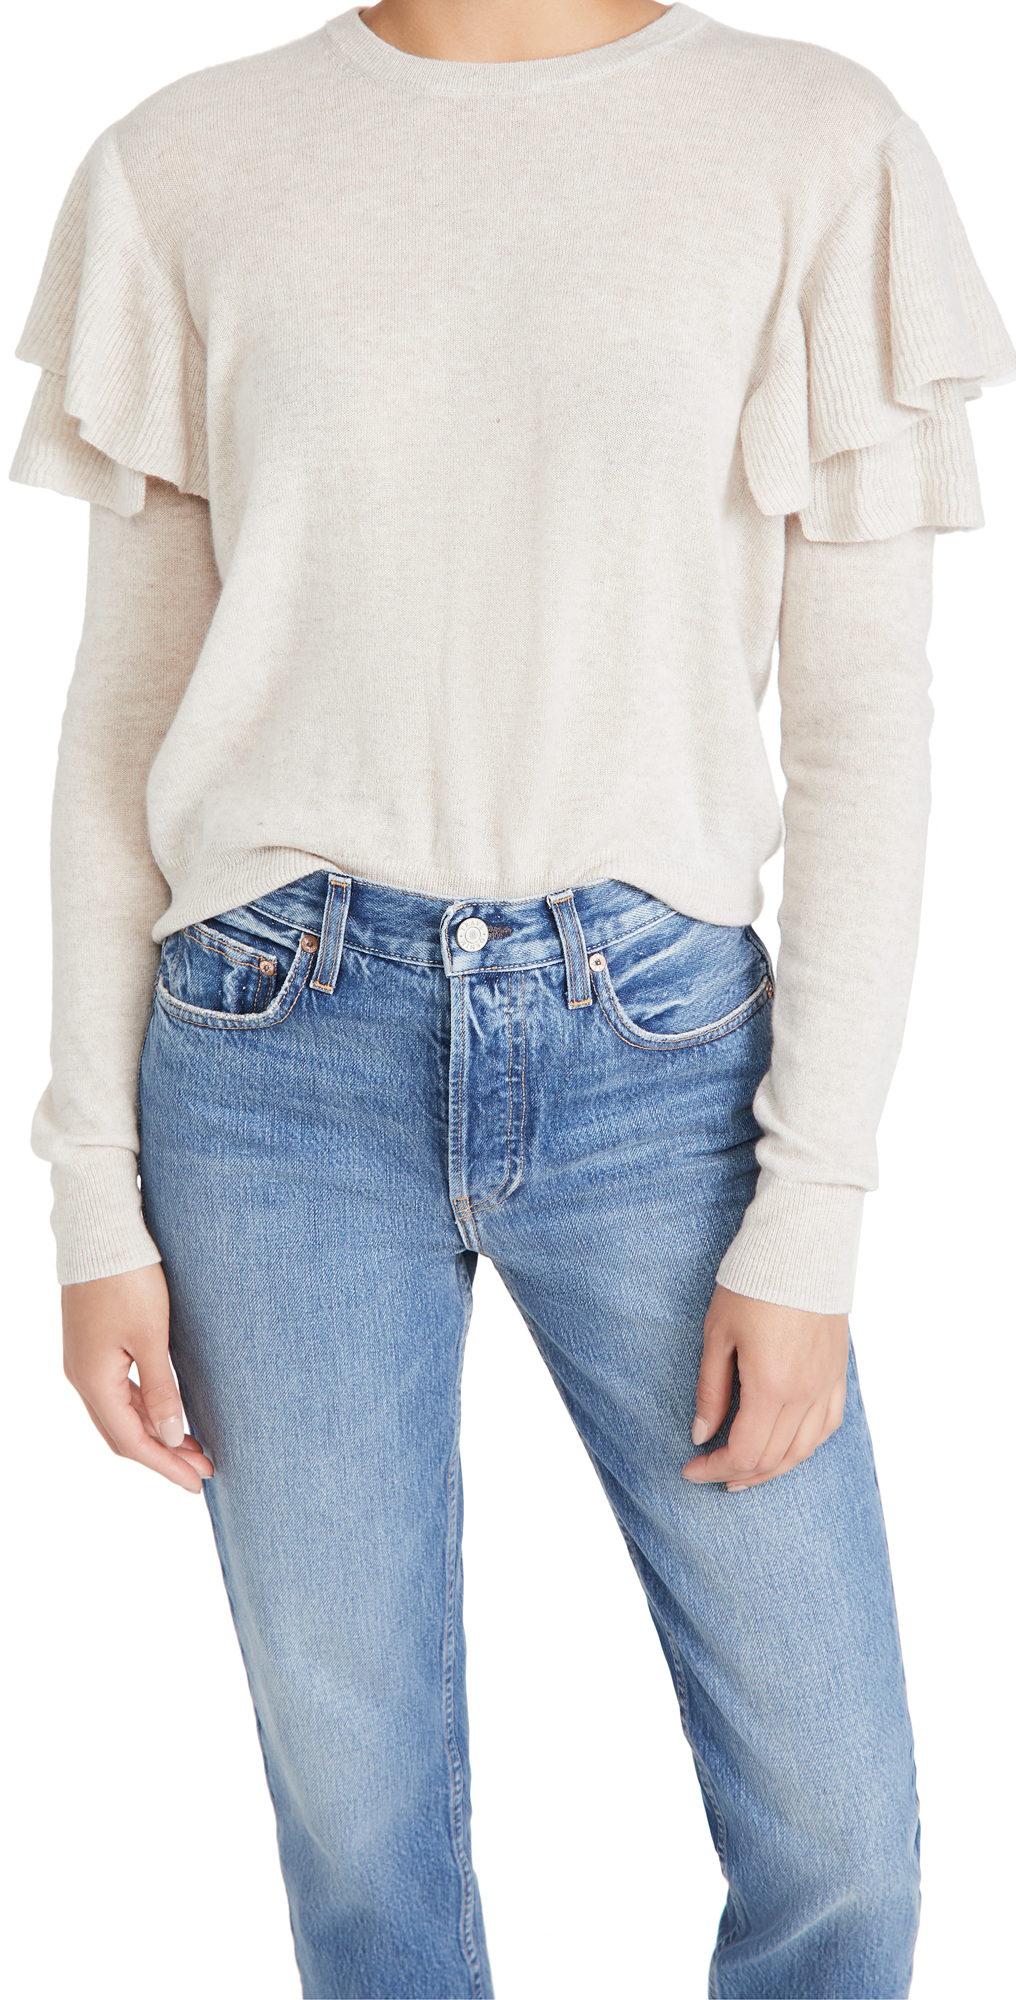 Autumn Cashmere Double Ruffle Crew Cashmere Sweater